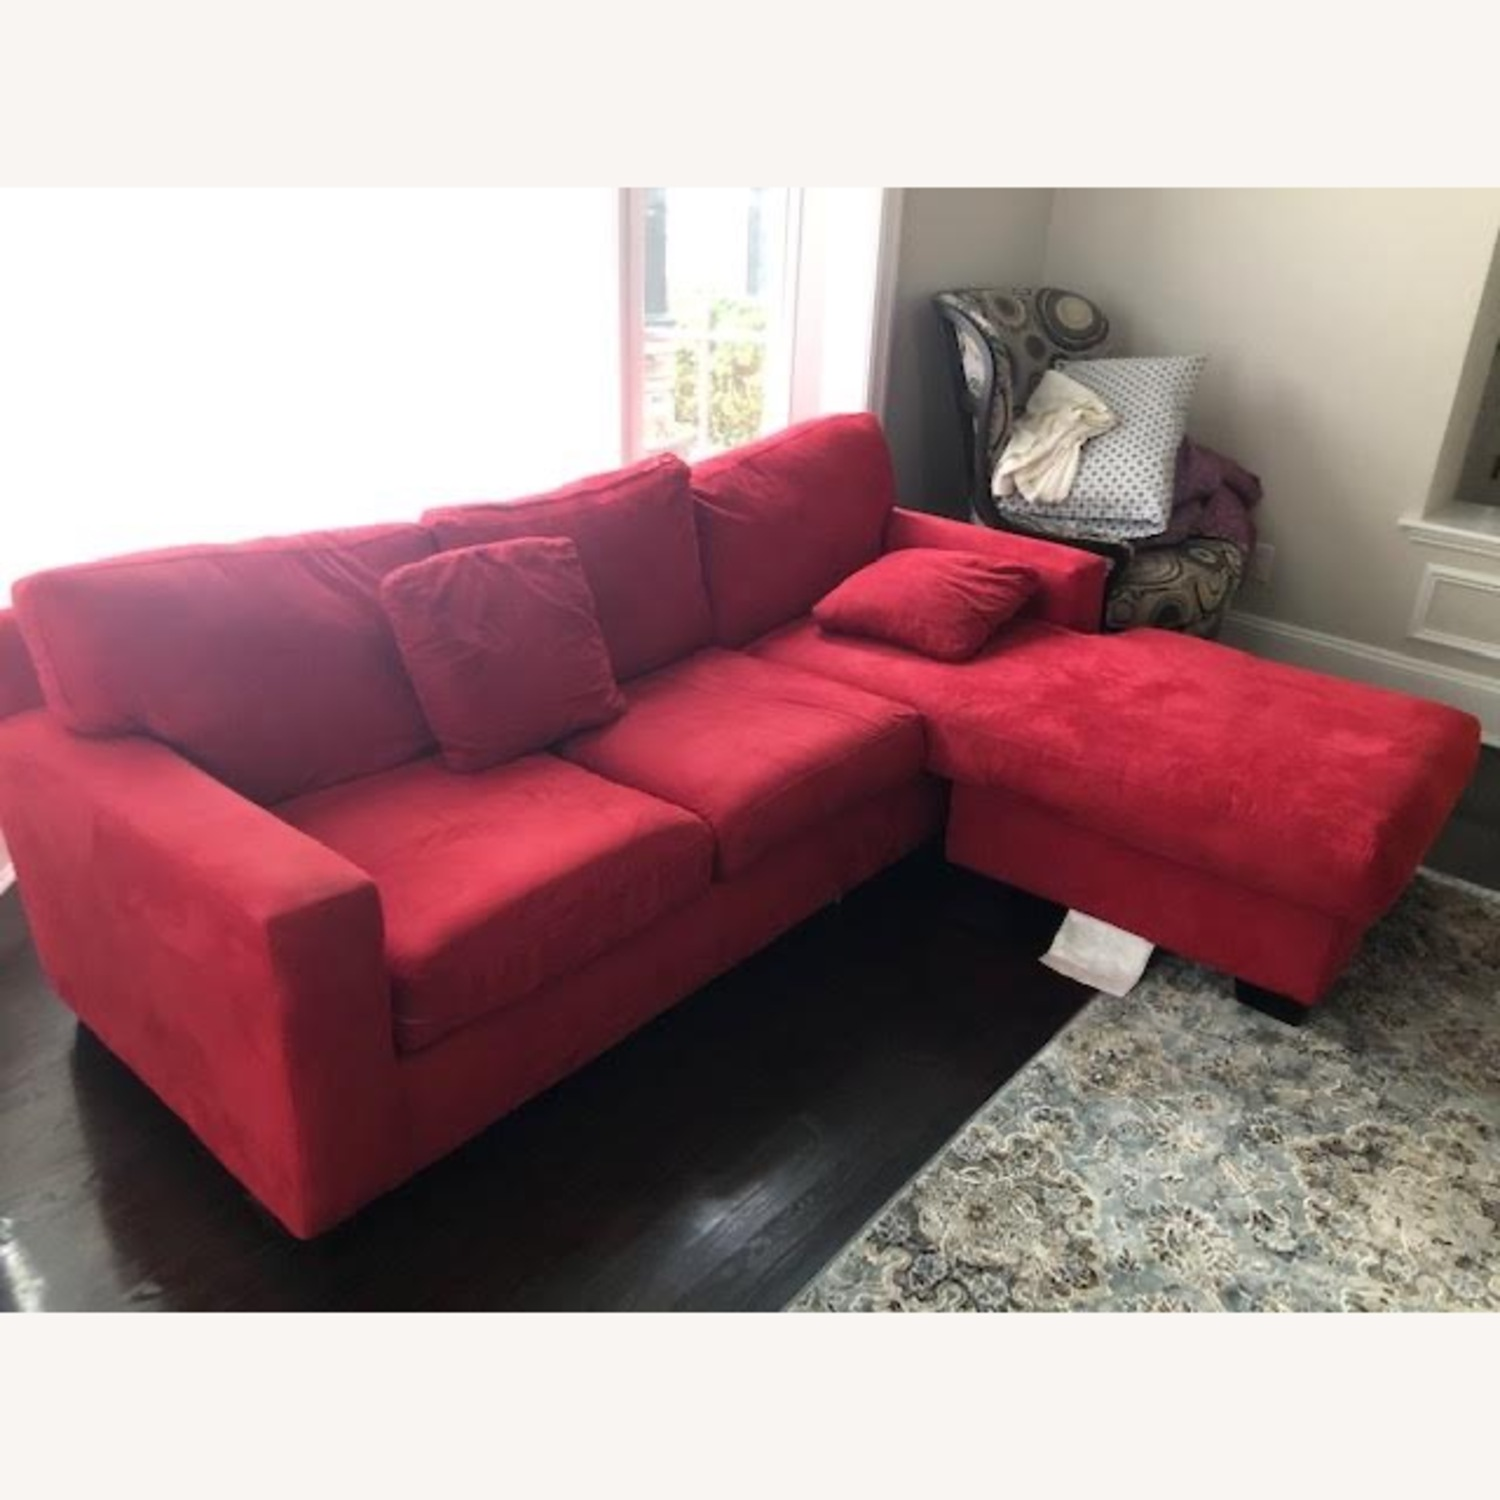 Macy's Red Suede Sofa Bed with Chaise Lounge - image-2